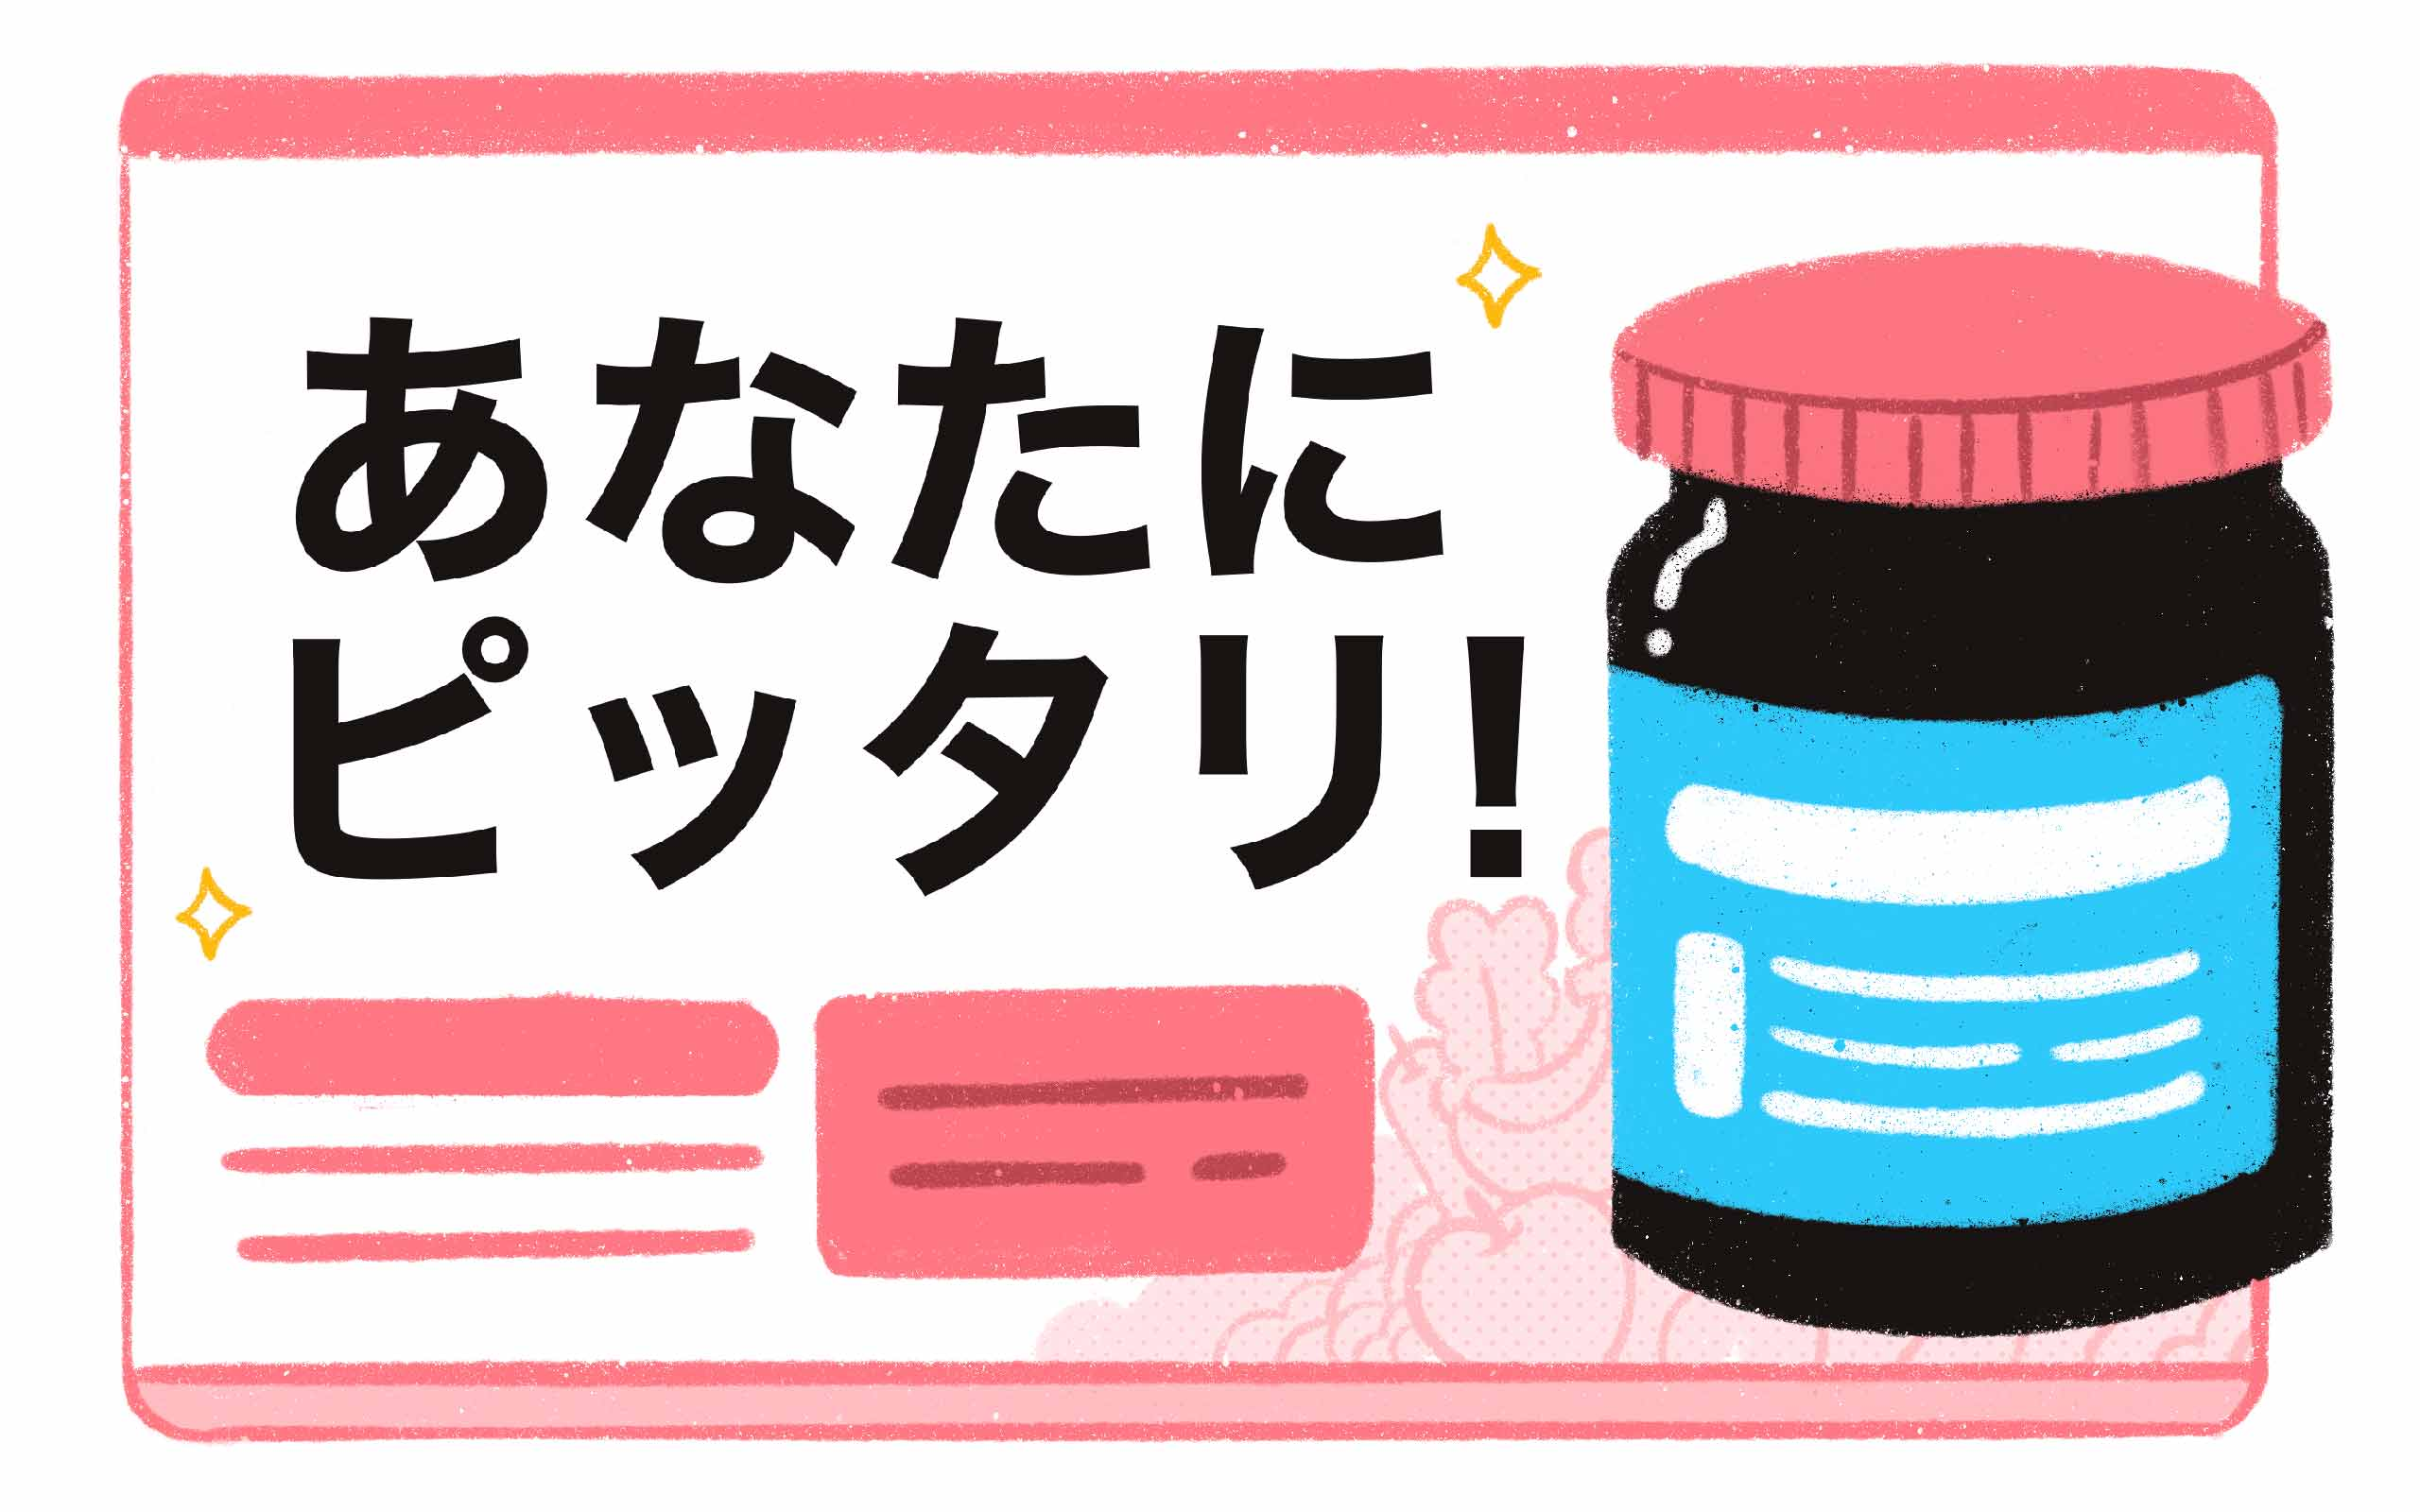 a diet supplement ad that says あなたにピッタリ!